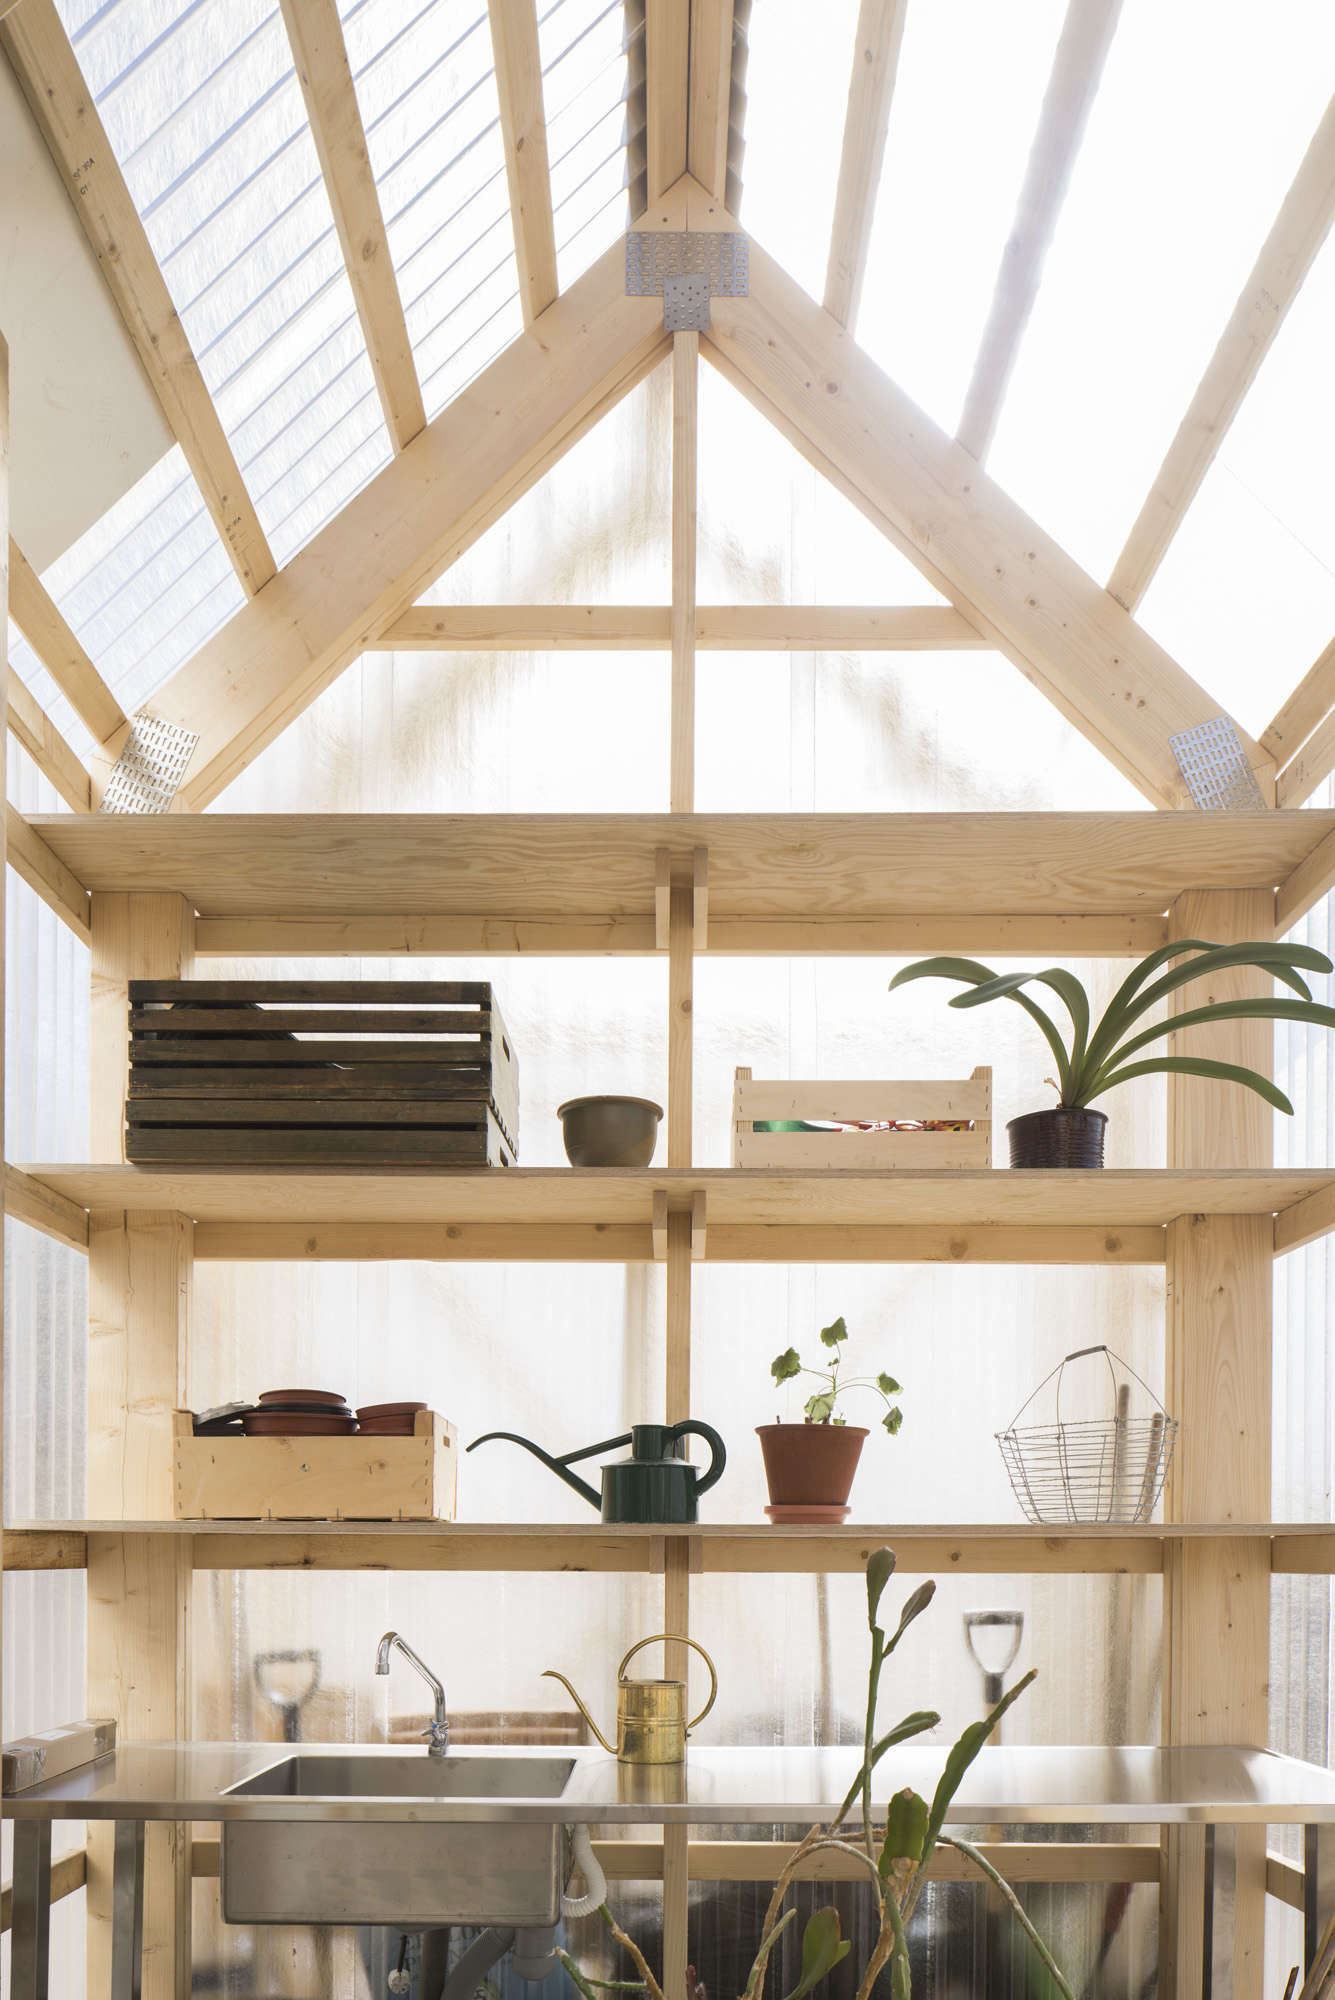 A greenhouse with translucent corrugated polycarbonate walls and exposed wood frame in Forstberg Ling's House for Mother